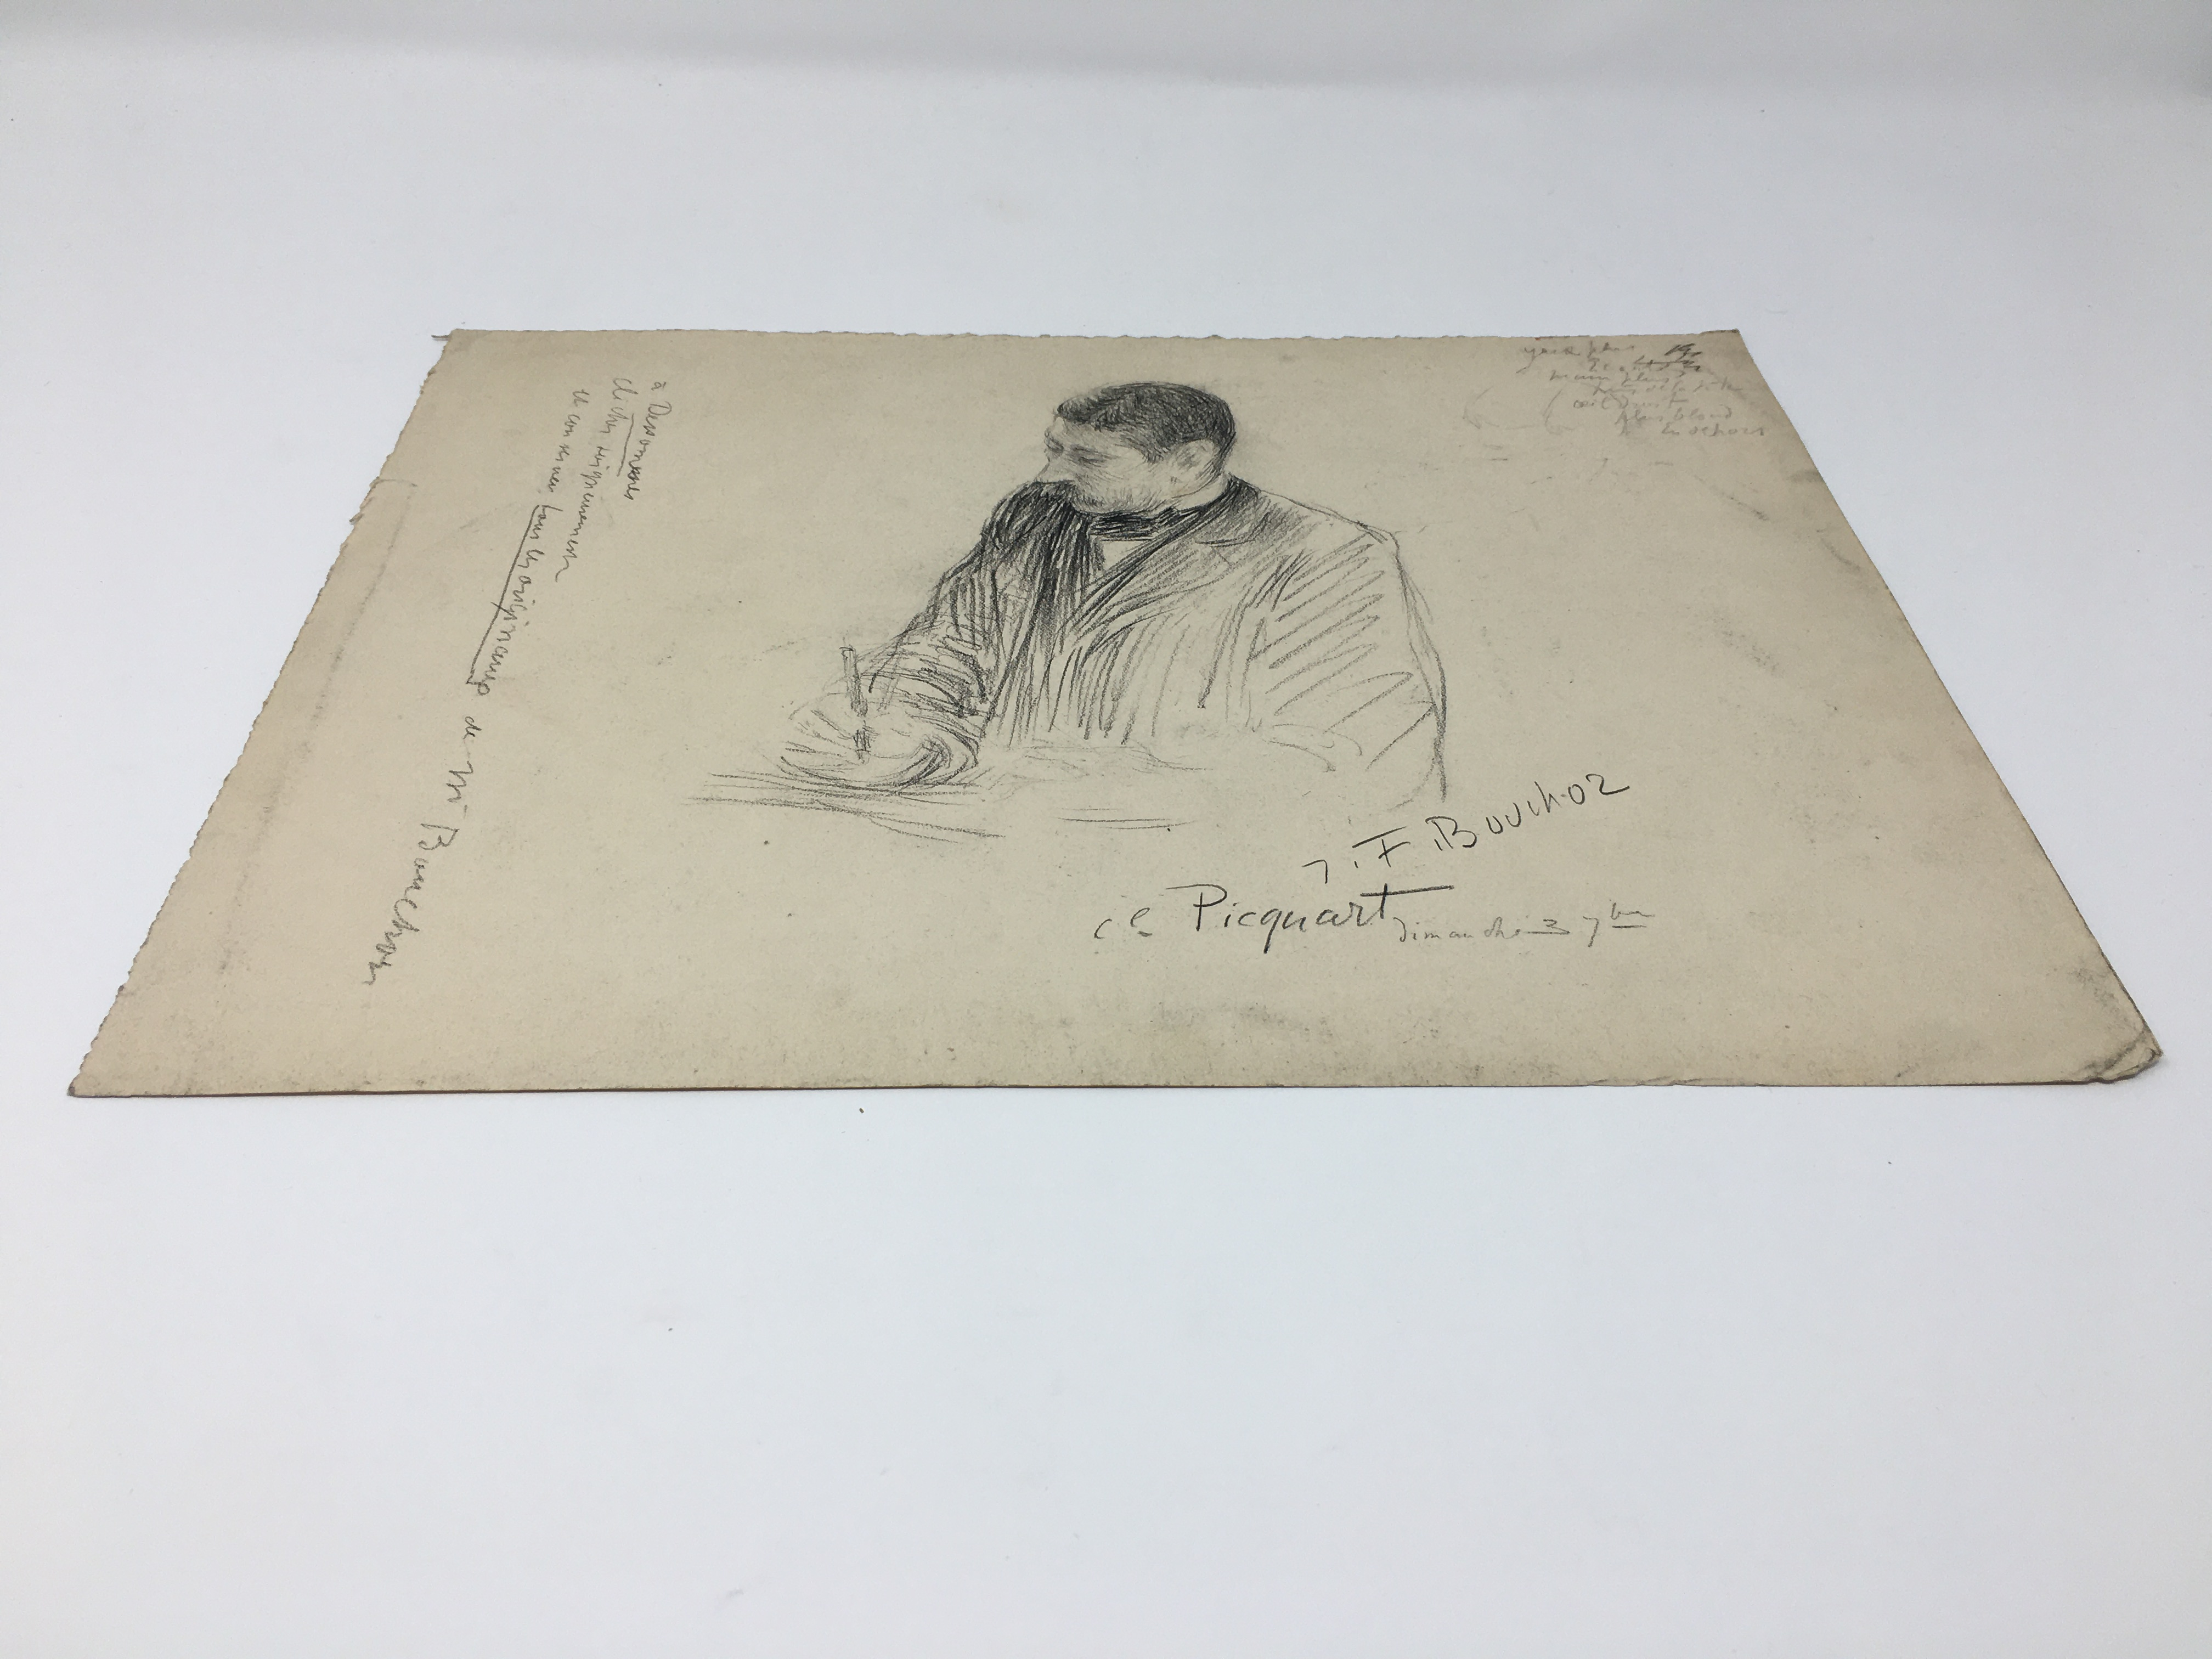 J'Accuse Newspaper, Emile Zola Quote, Signed Dreyfus Portrait, Rare Trial Drawings & Schwartzkoppen - Image 37 of 74